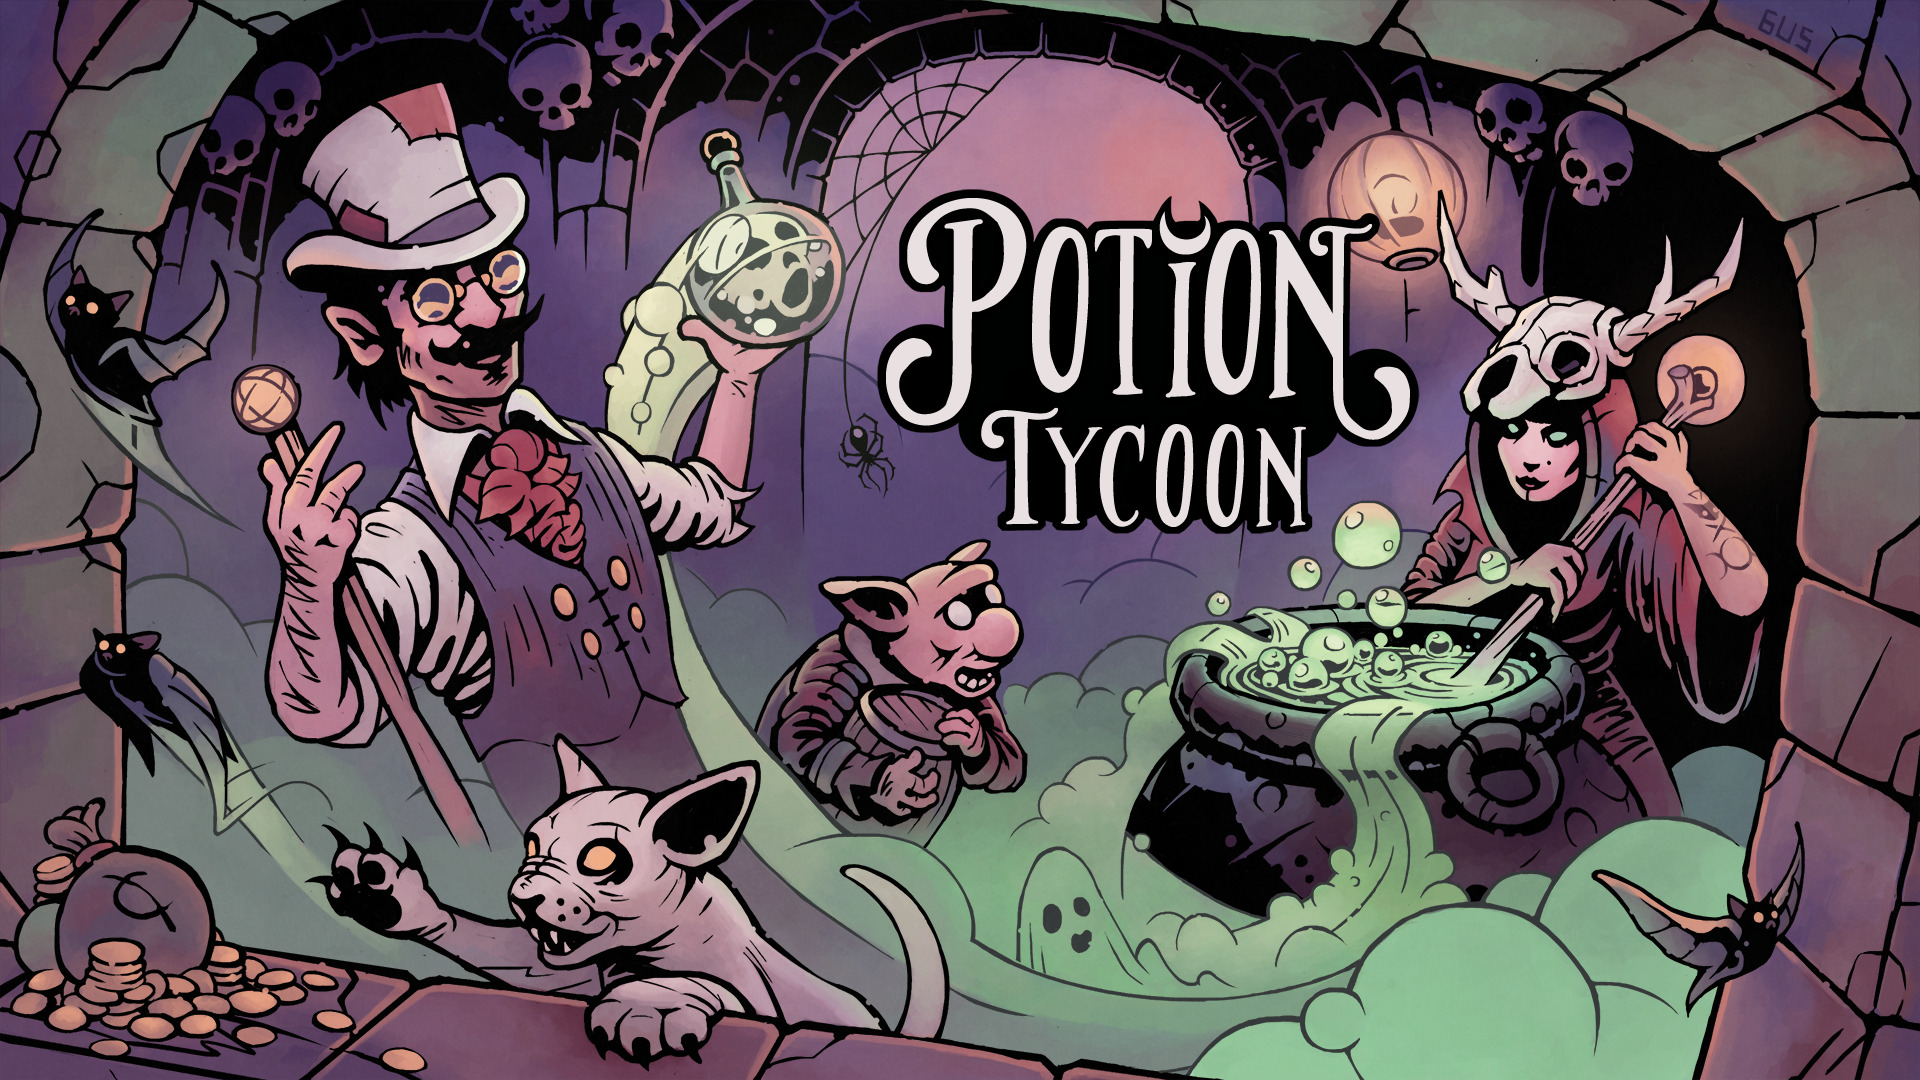 Potion Tycoon